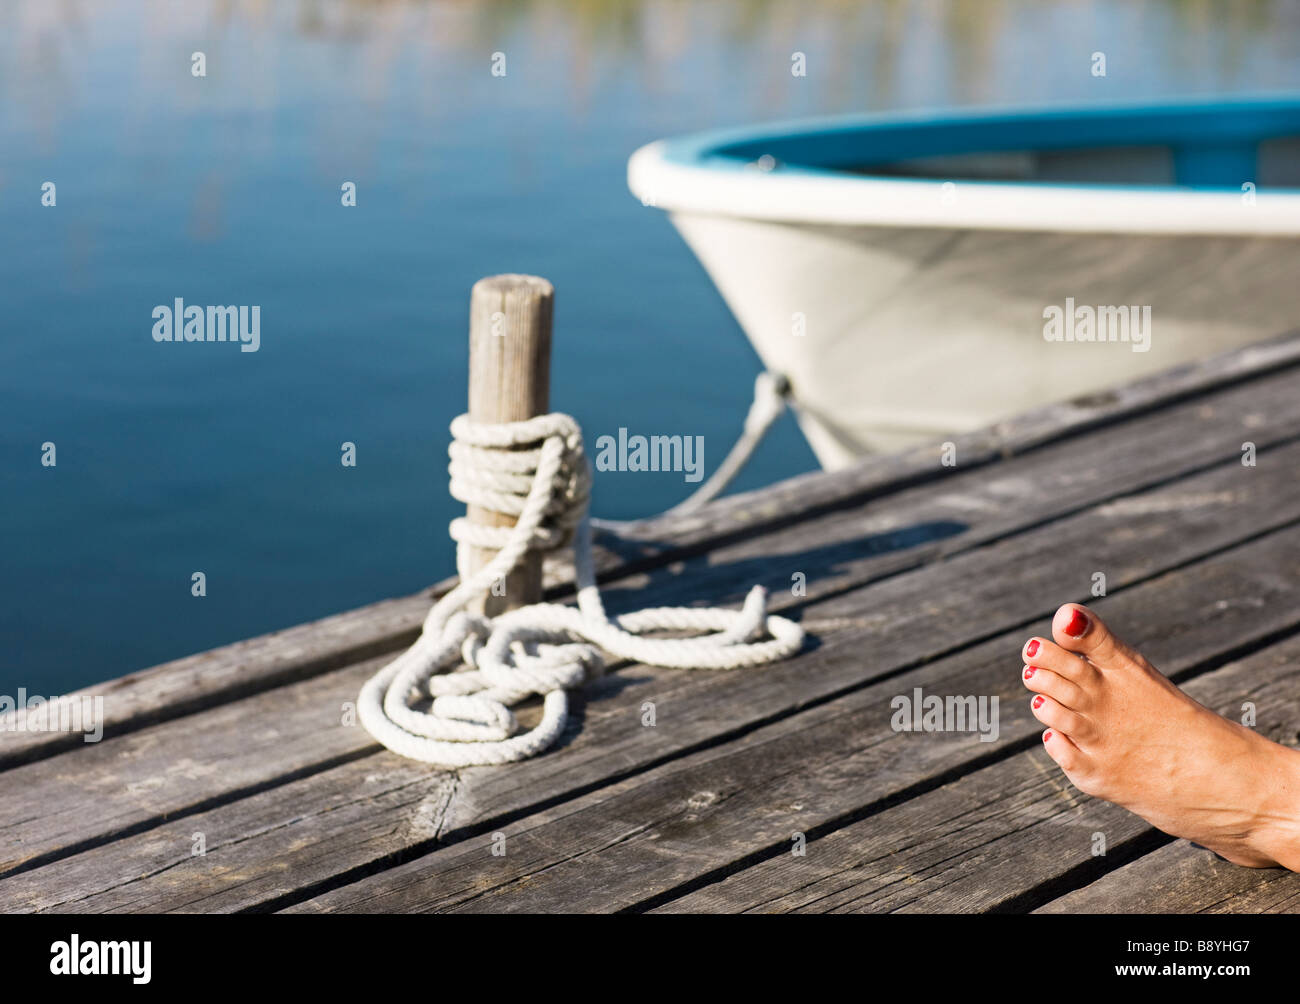 A foot on a jetty. - Stock Image